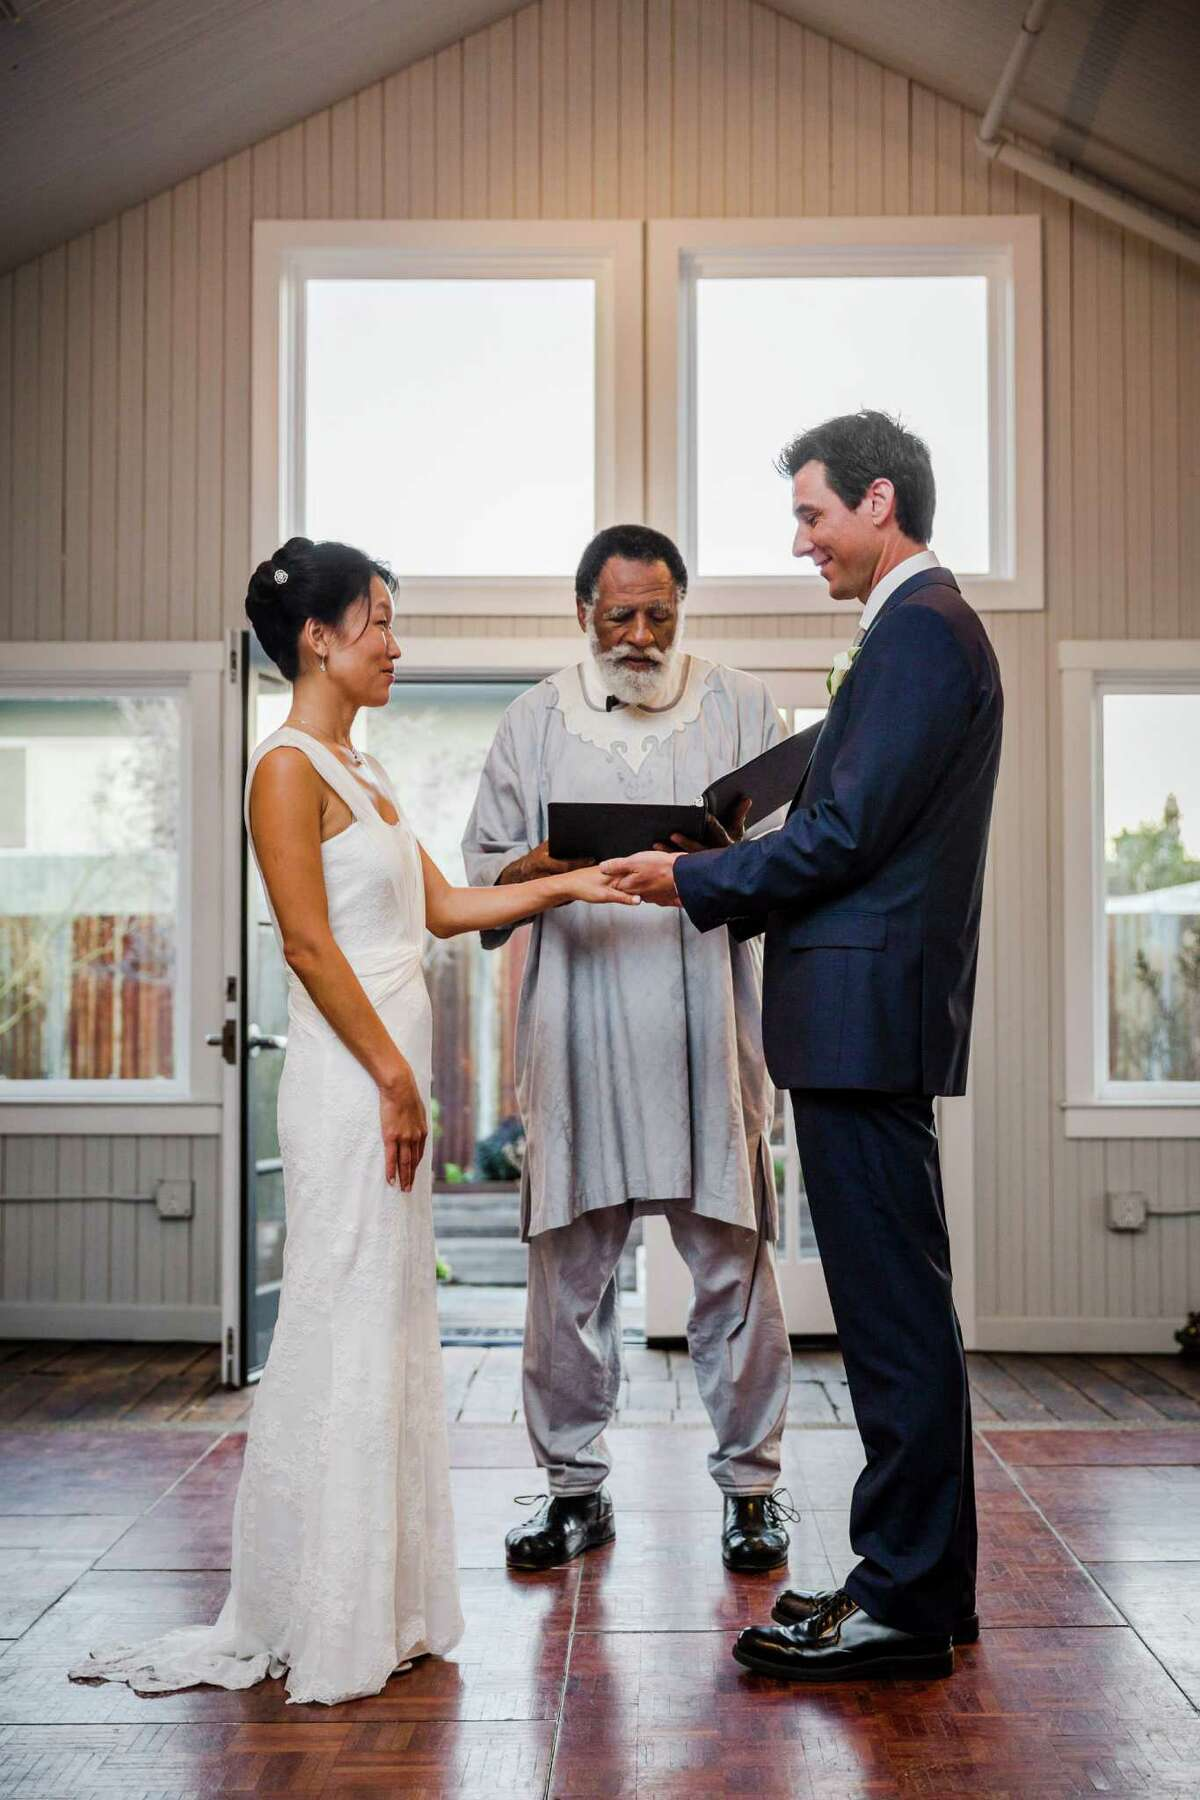 Arnold Perkins, Community Servant, officiated the wedding ceremony of Phuong Quach and Brian Thoms in Vessel Gallery in Oakland.